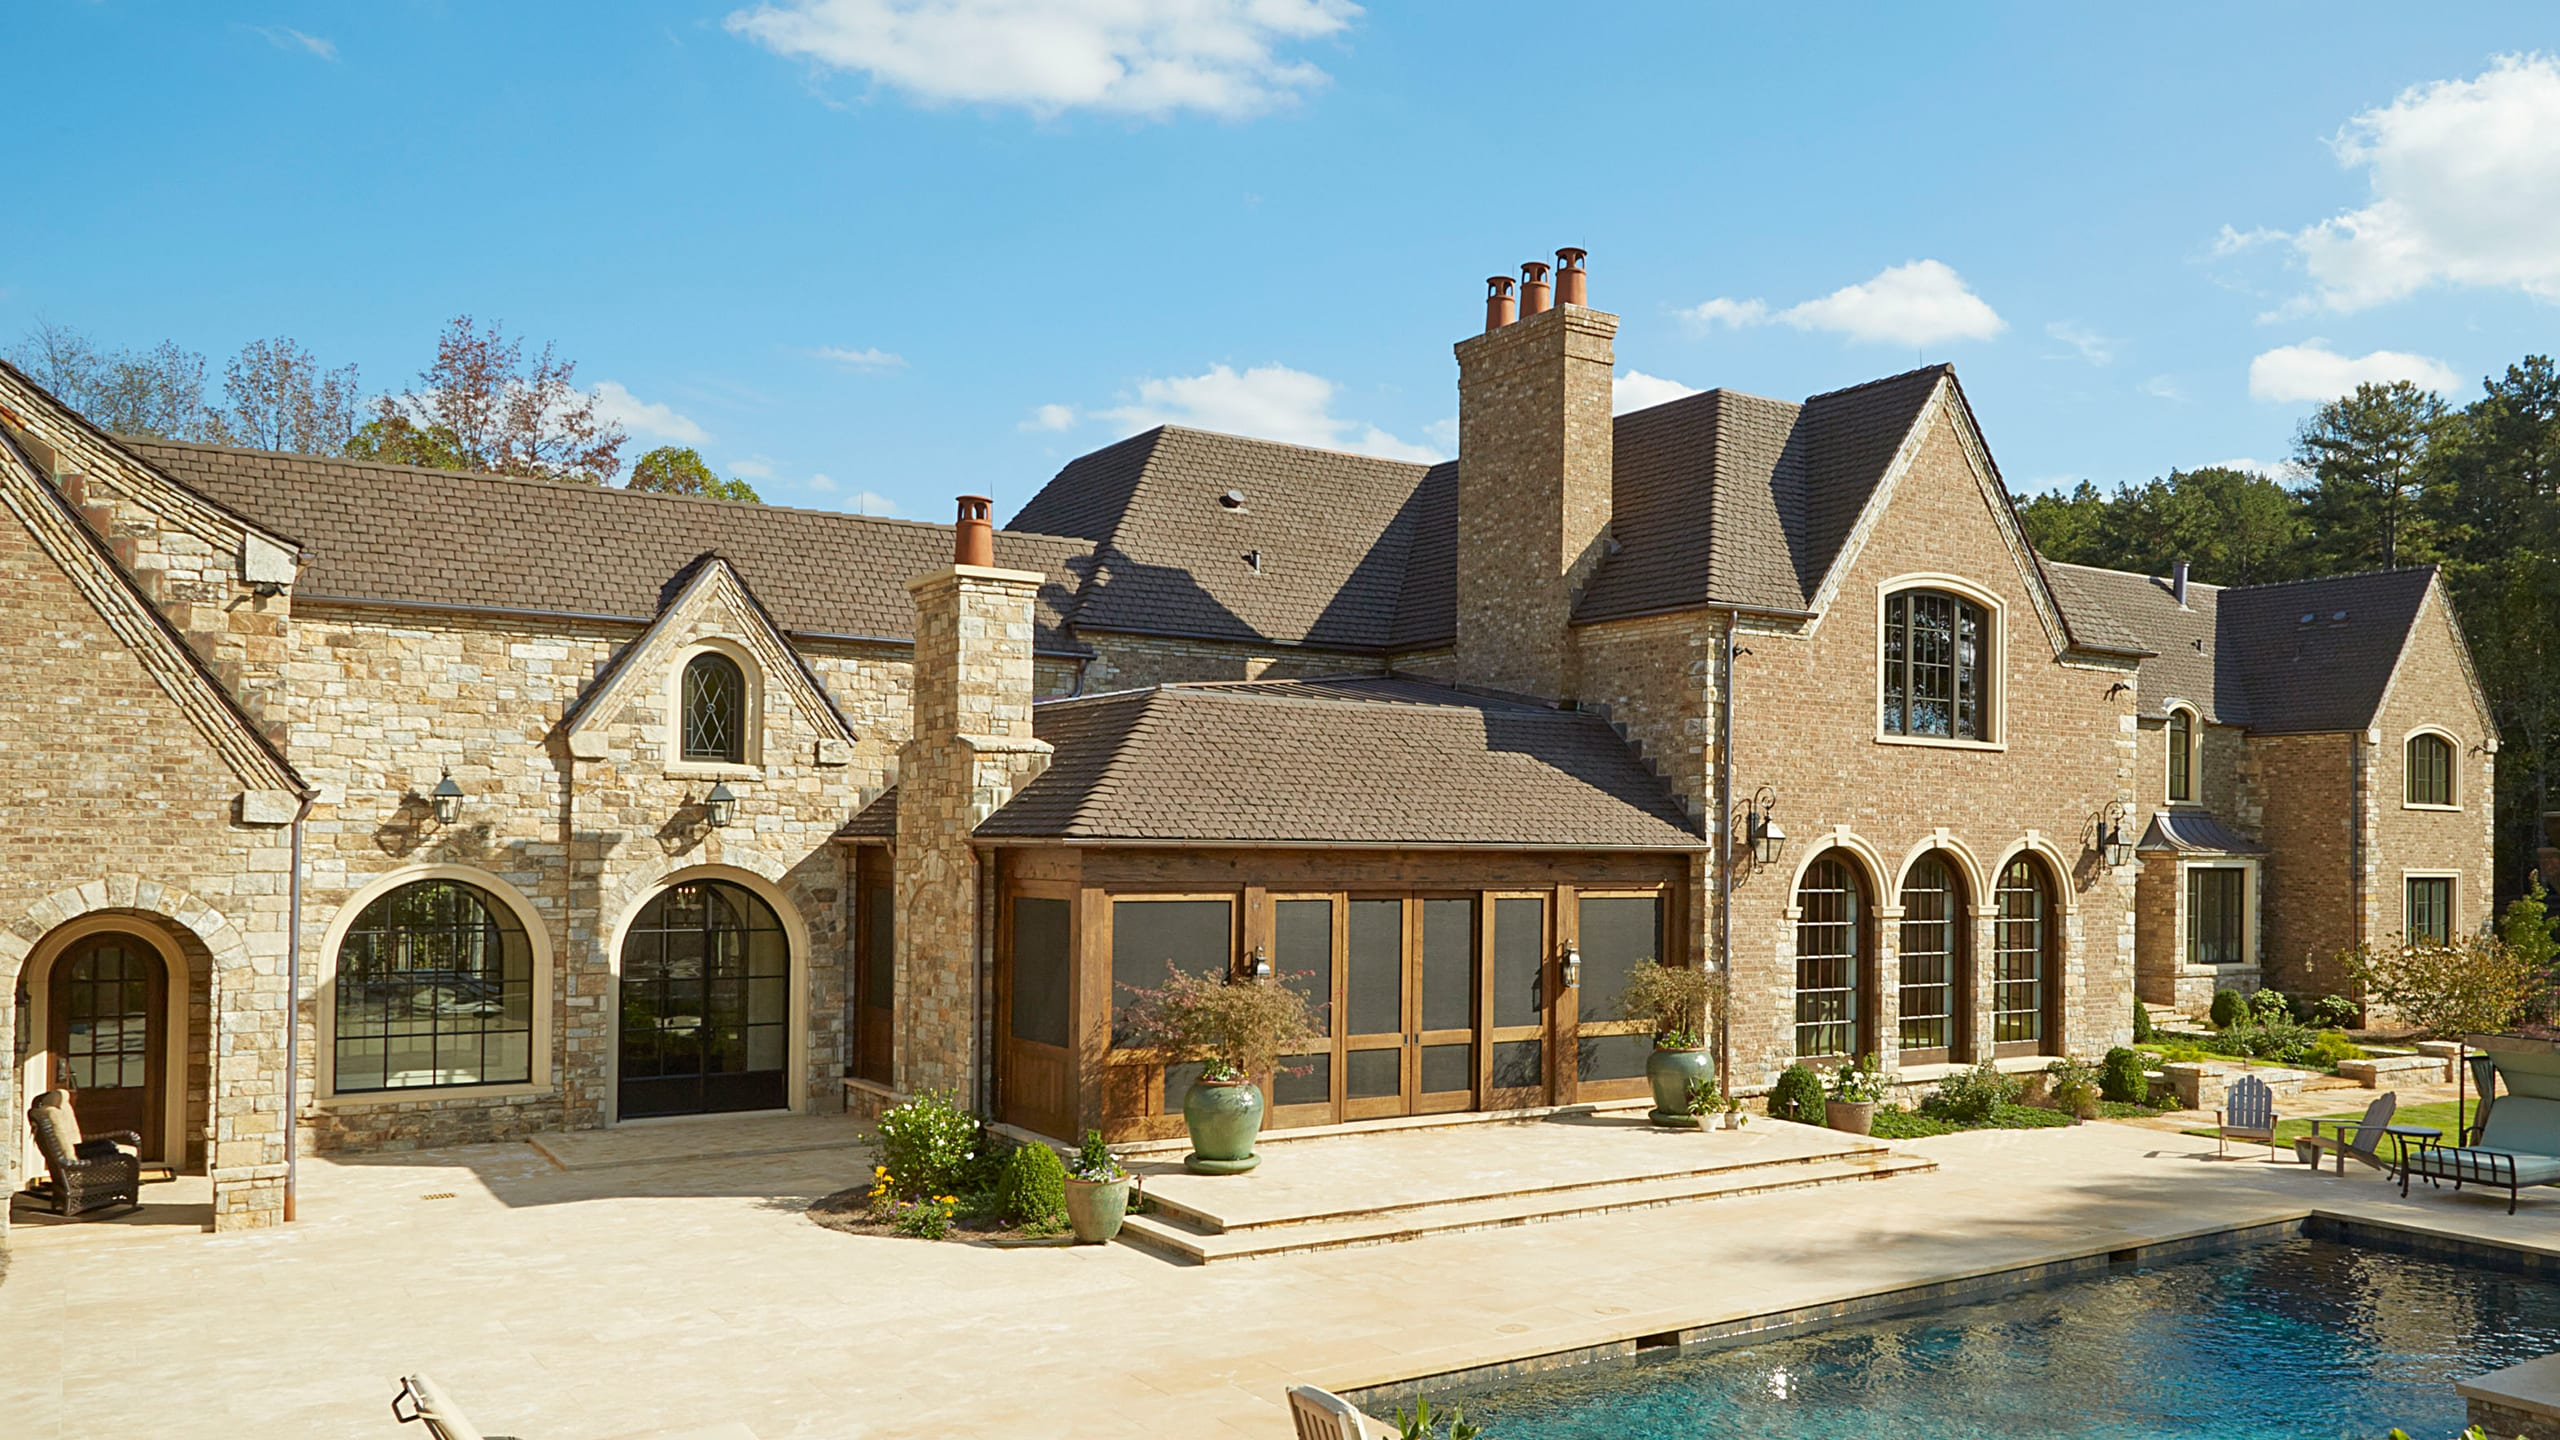 Private Residence - Marietta Ludowici Roof Tile